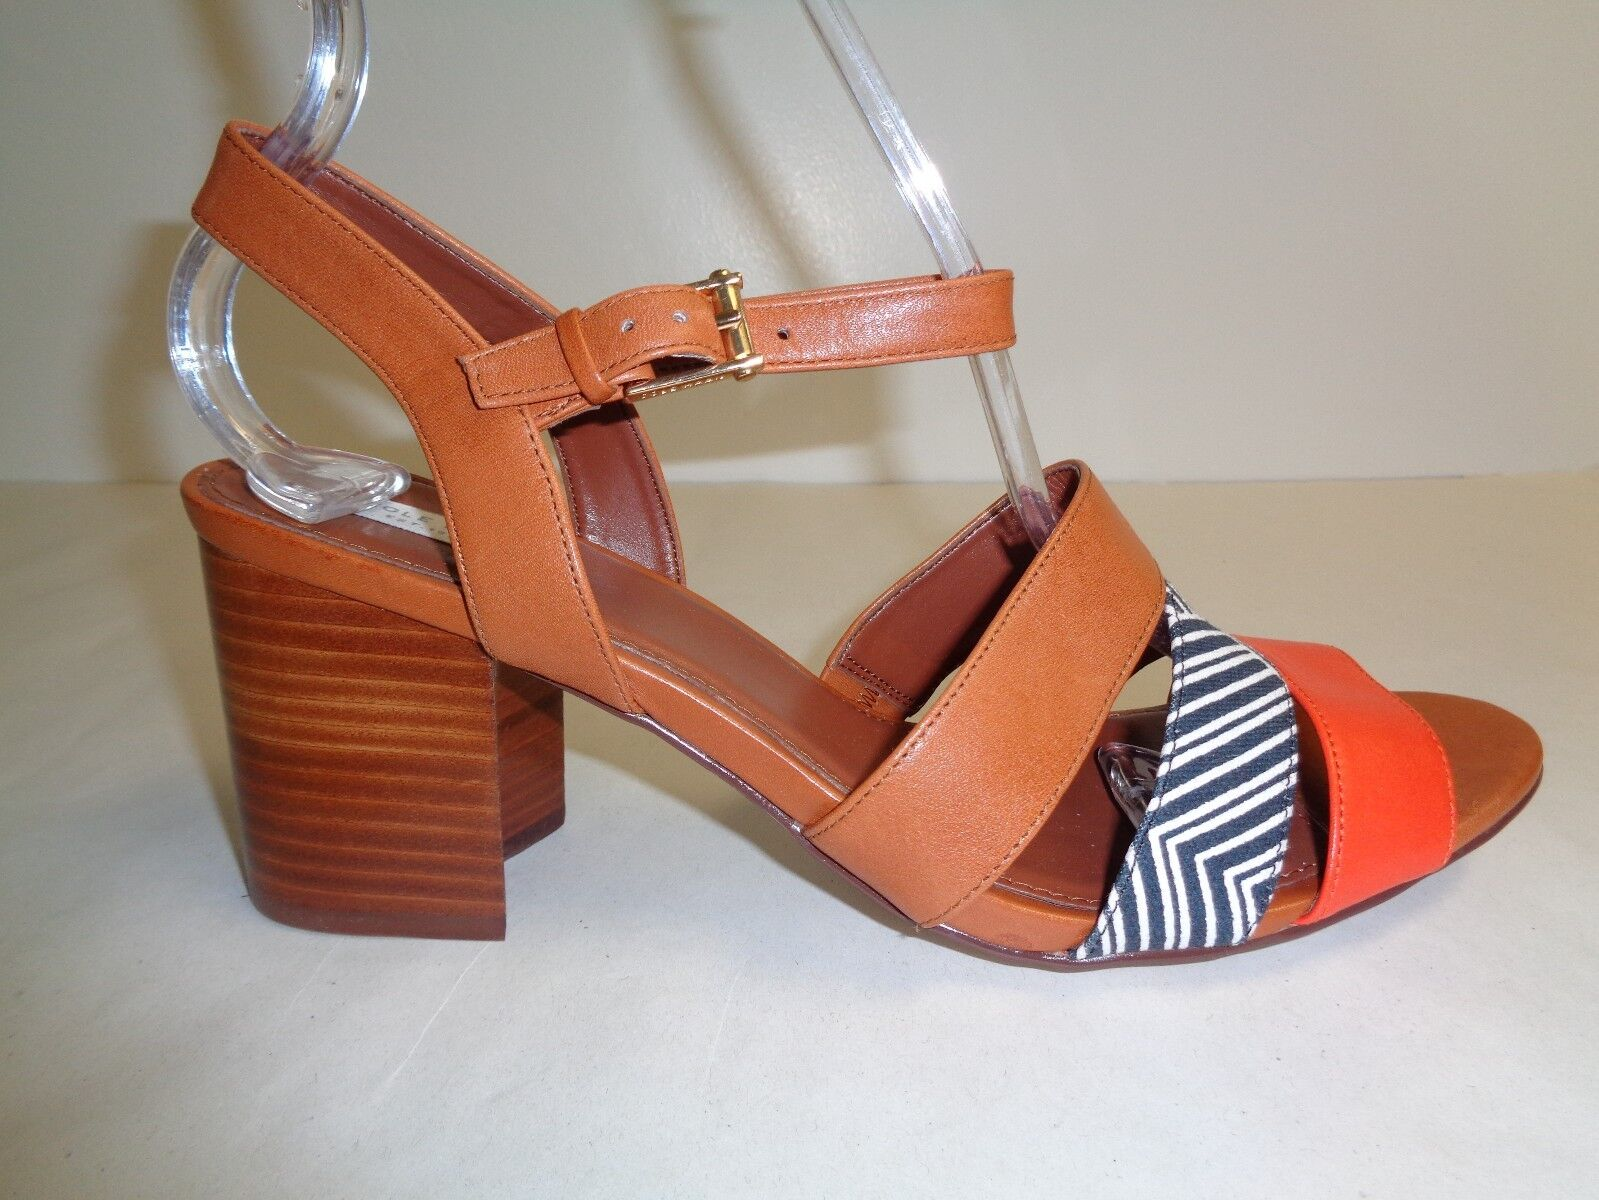 Cole Haan Size 9 M ANISA HIGH Brown Leather Dress Sandals New Donna Shoes